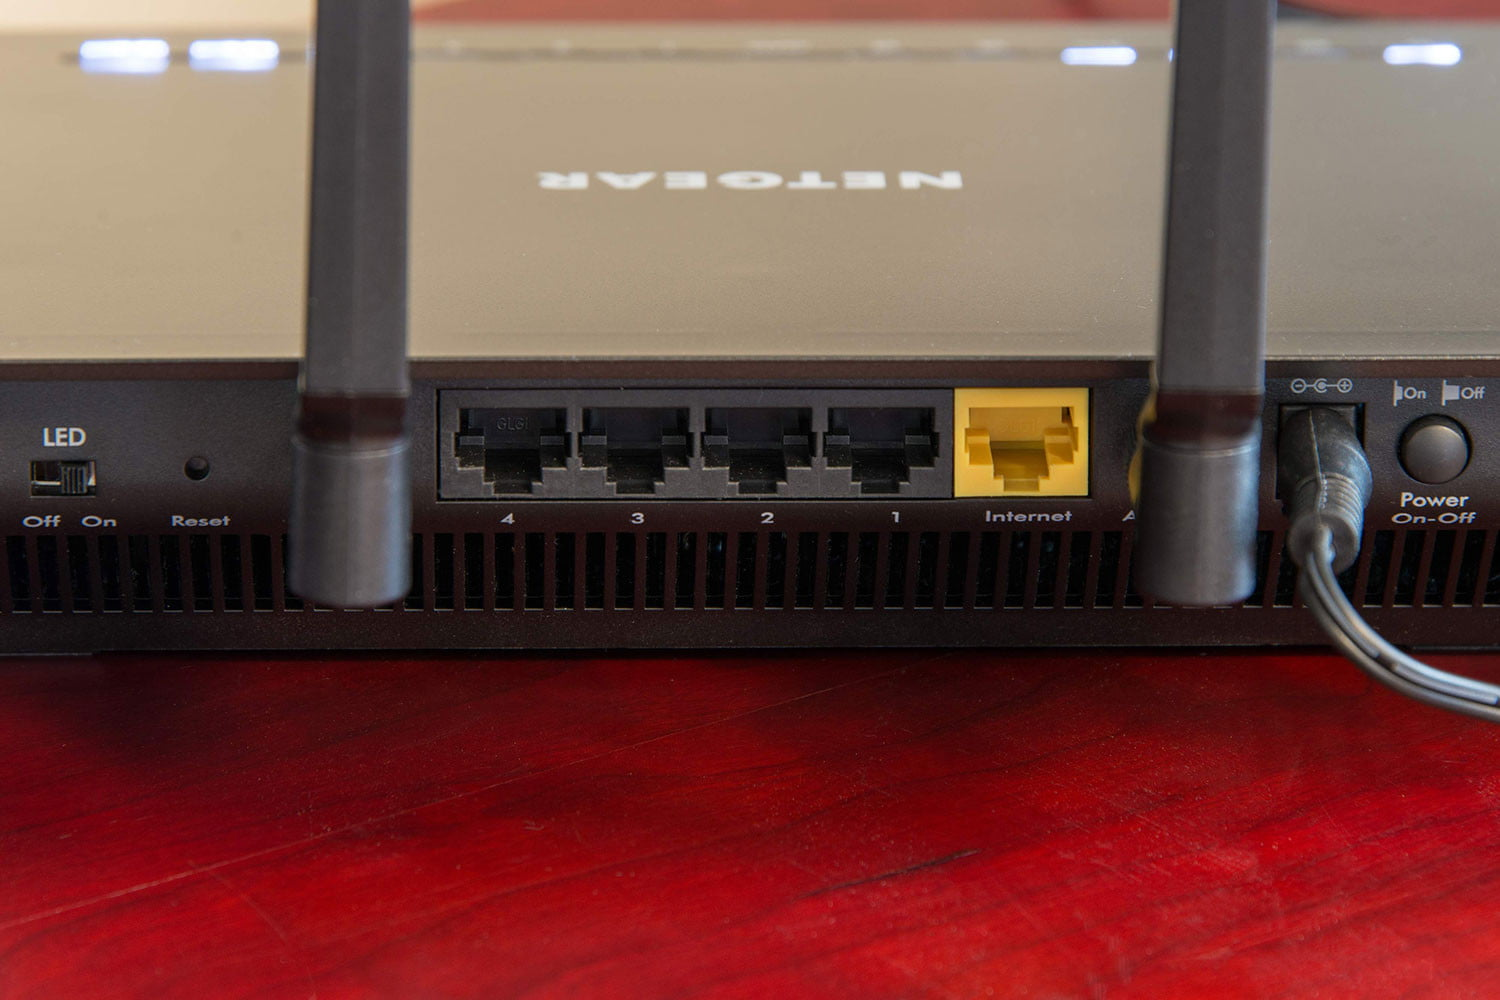 How To Set Up A Wireless Router Digital Trends Cable Modem With Connection On Home Tv Wiring Netgear Nighthawk Ac2600